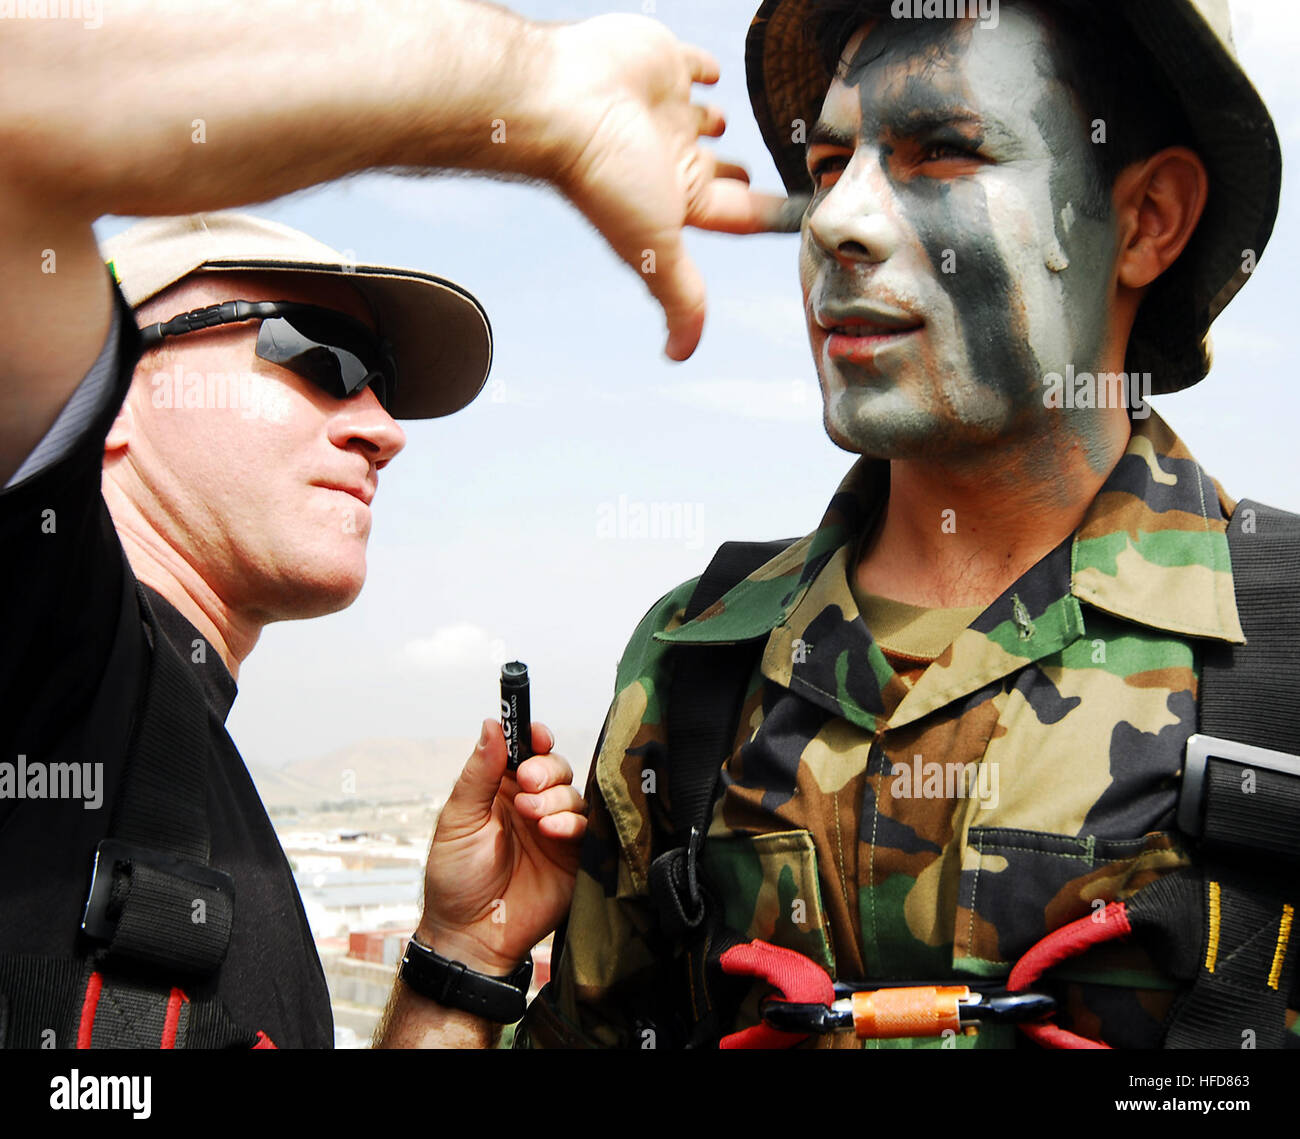 KABUL, Afghanistan (August 9, 2010)  French Army Captain Guillaume Quevarrec, left, an EPIDOTE program Afghan National - Stock Image